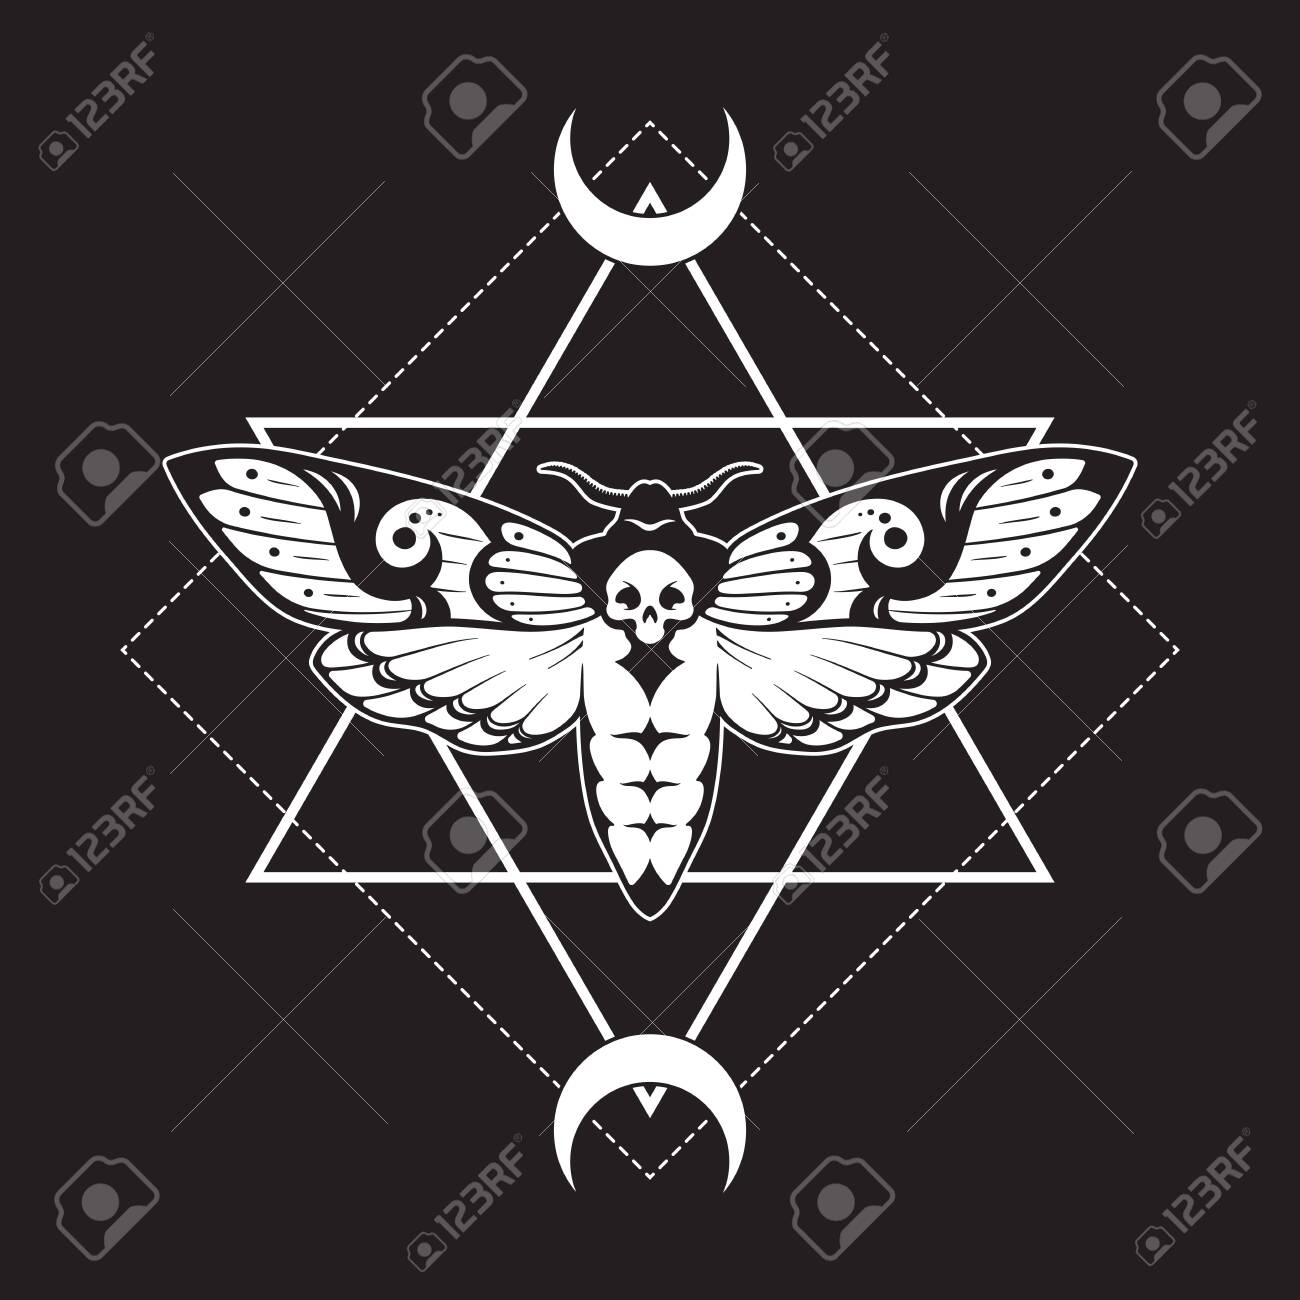 Deaths head hawk moth and sacred geometry with moon phases hand drawn line art print or tattoo design vector illustration - 145667478